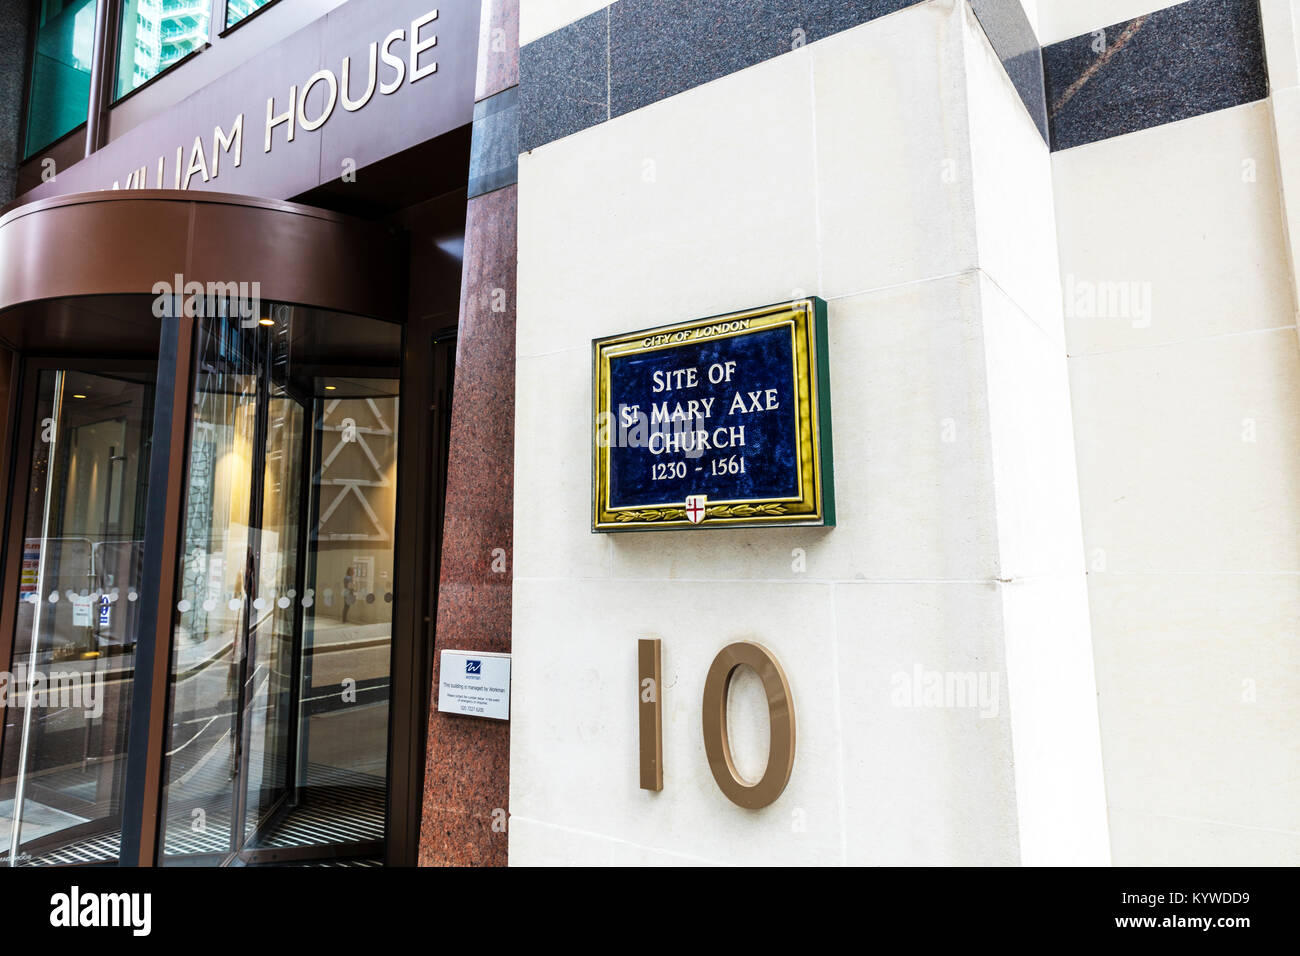 The site of St Mary Axe Church 1230 - 1561 sign plaque London uk, St Mary Axe and Leadenhall Street, Fitzwilliam - Stock Image